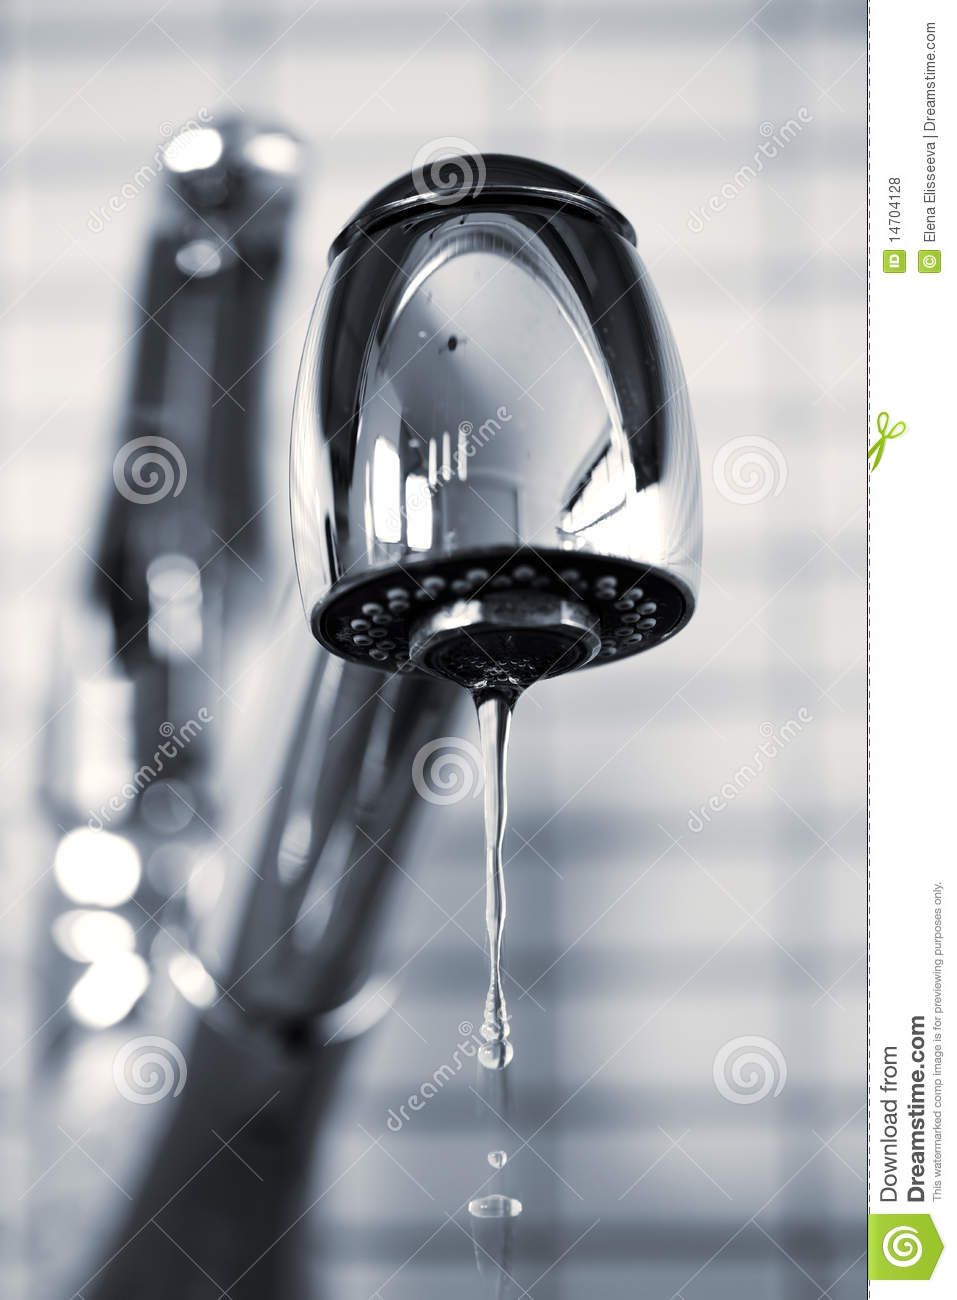 leaky kitchen faucet royalty free stock photos image